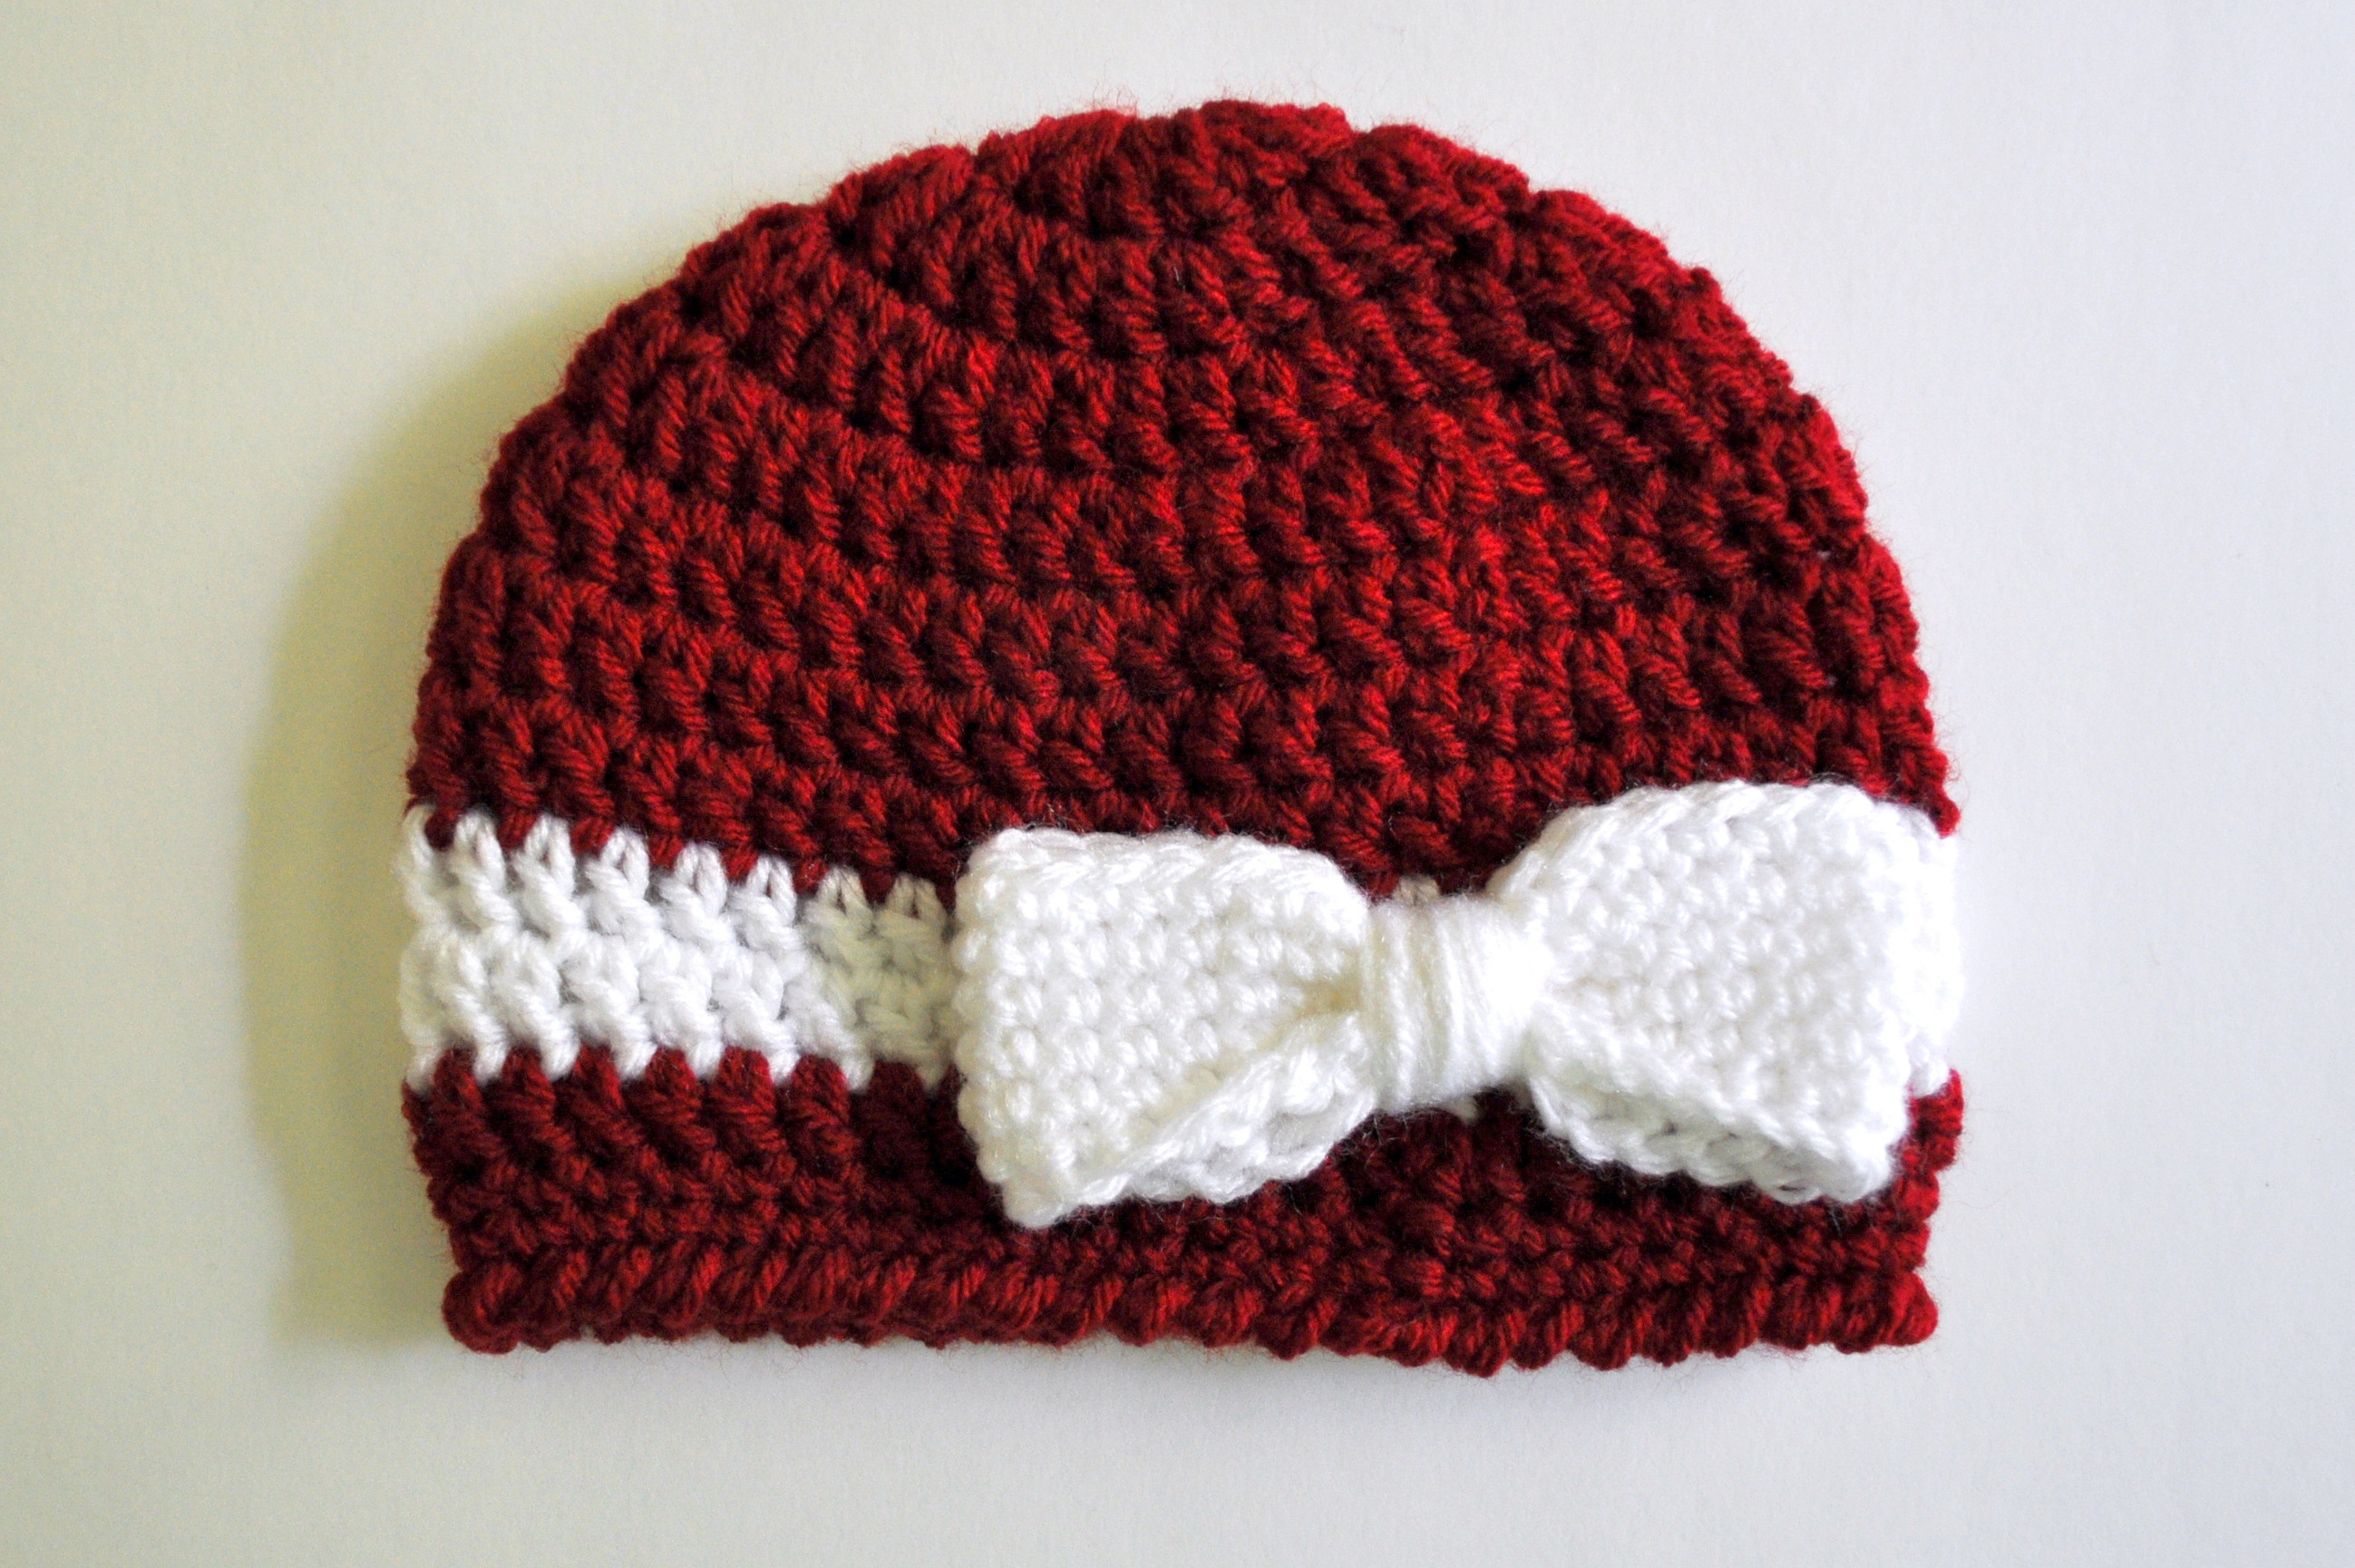 Best Of Crochet Baby Hats for Beginners Crochet Hat for Beginners Of Amazing 44 Images Crochet Hat for Beginners